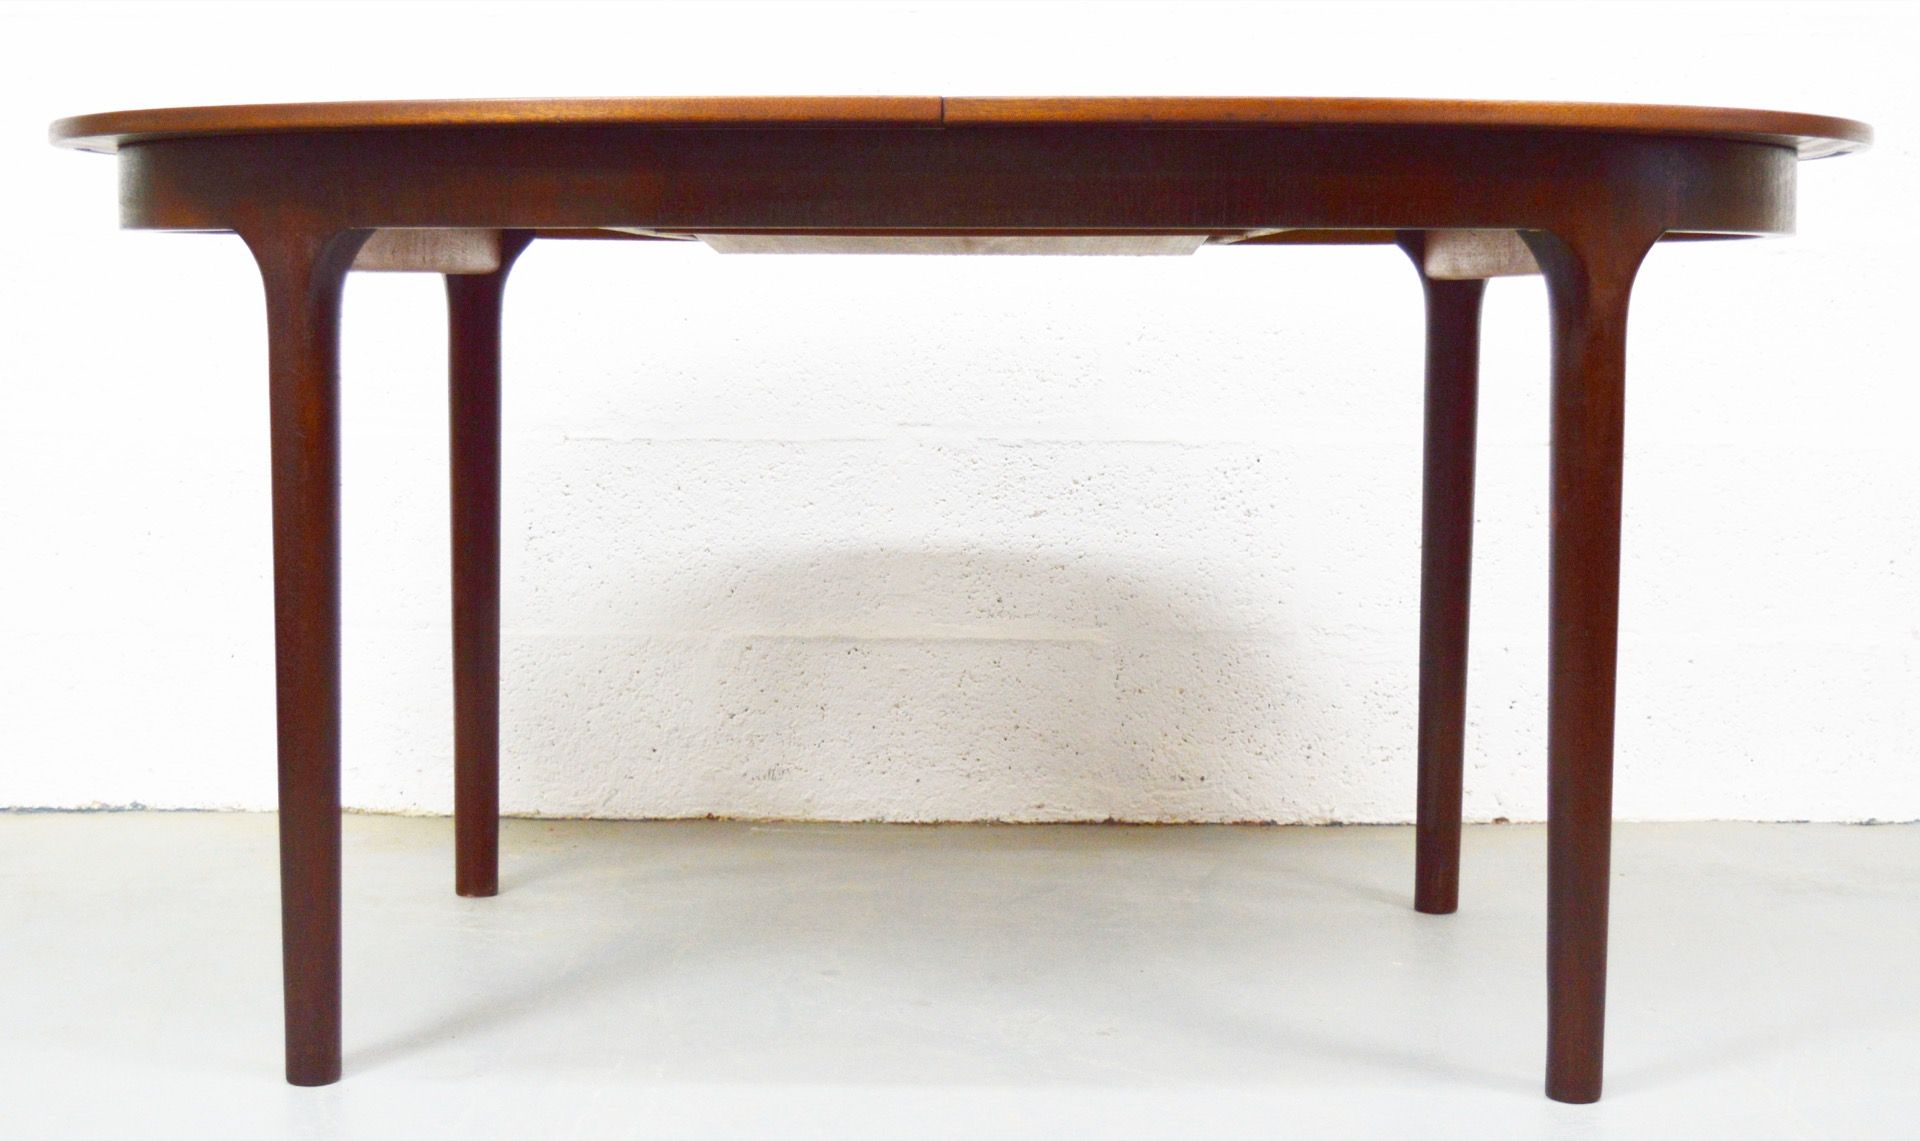 Table de salle manger ovale mid century rallonges en for Salle a manger table ovale